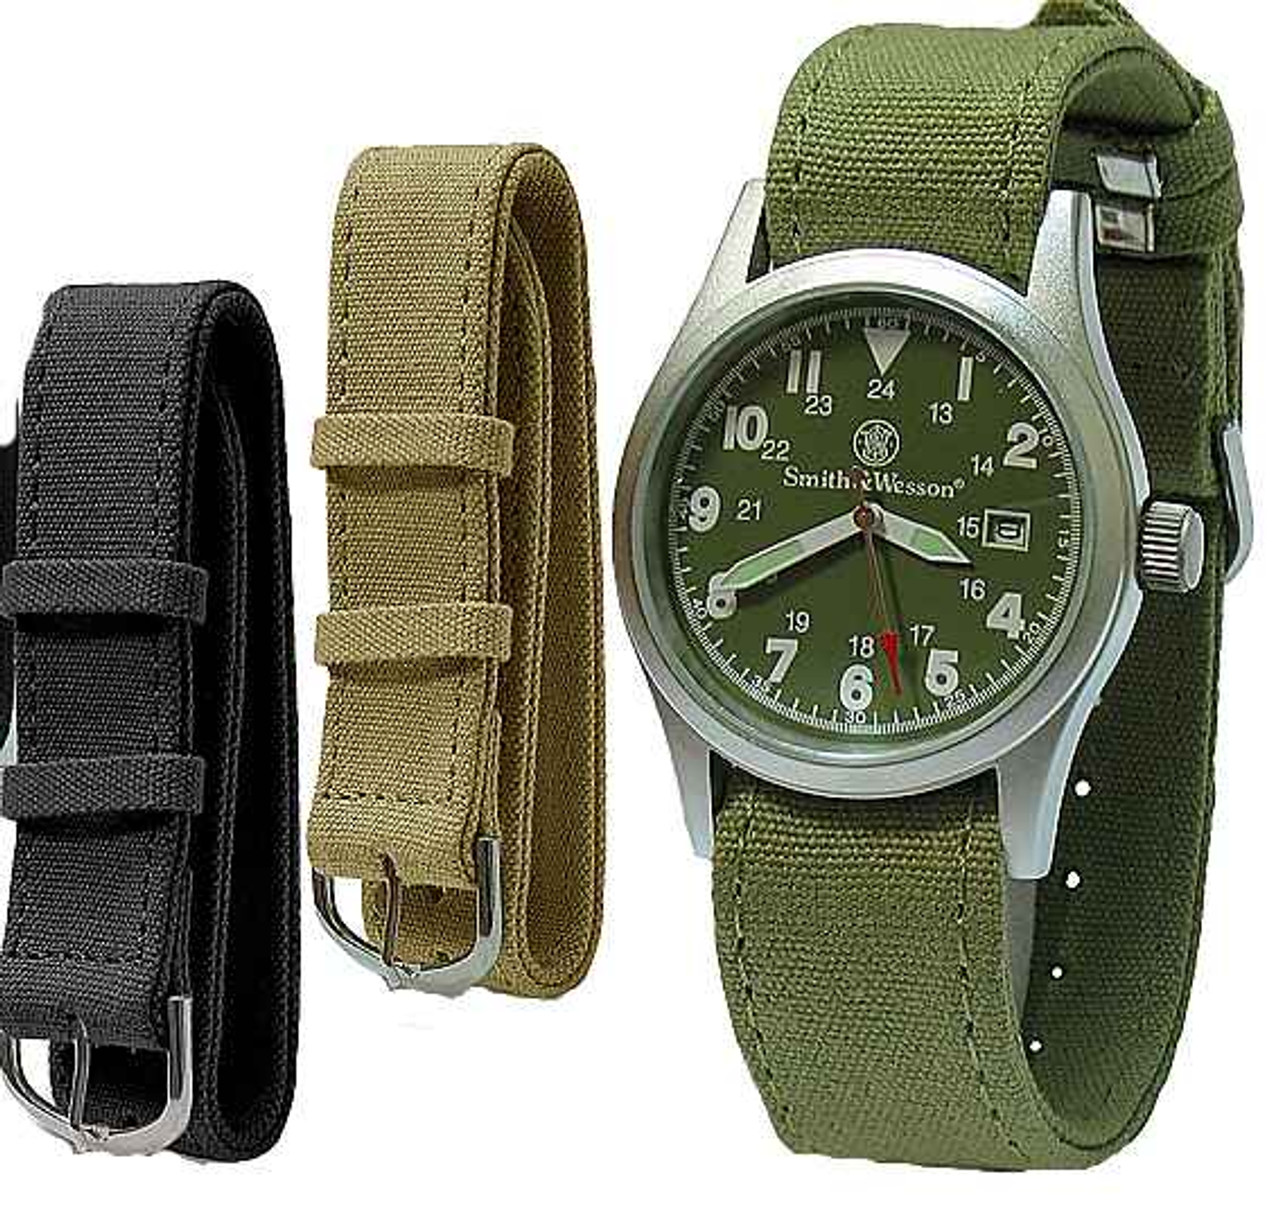 Smith & Wesson Military Watch, OD Green Face